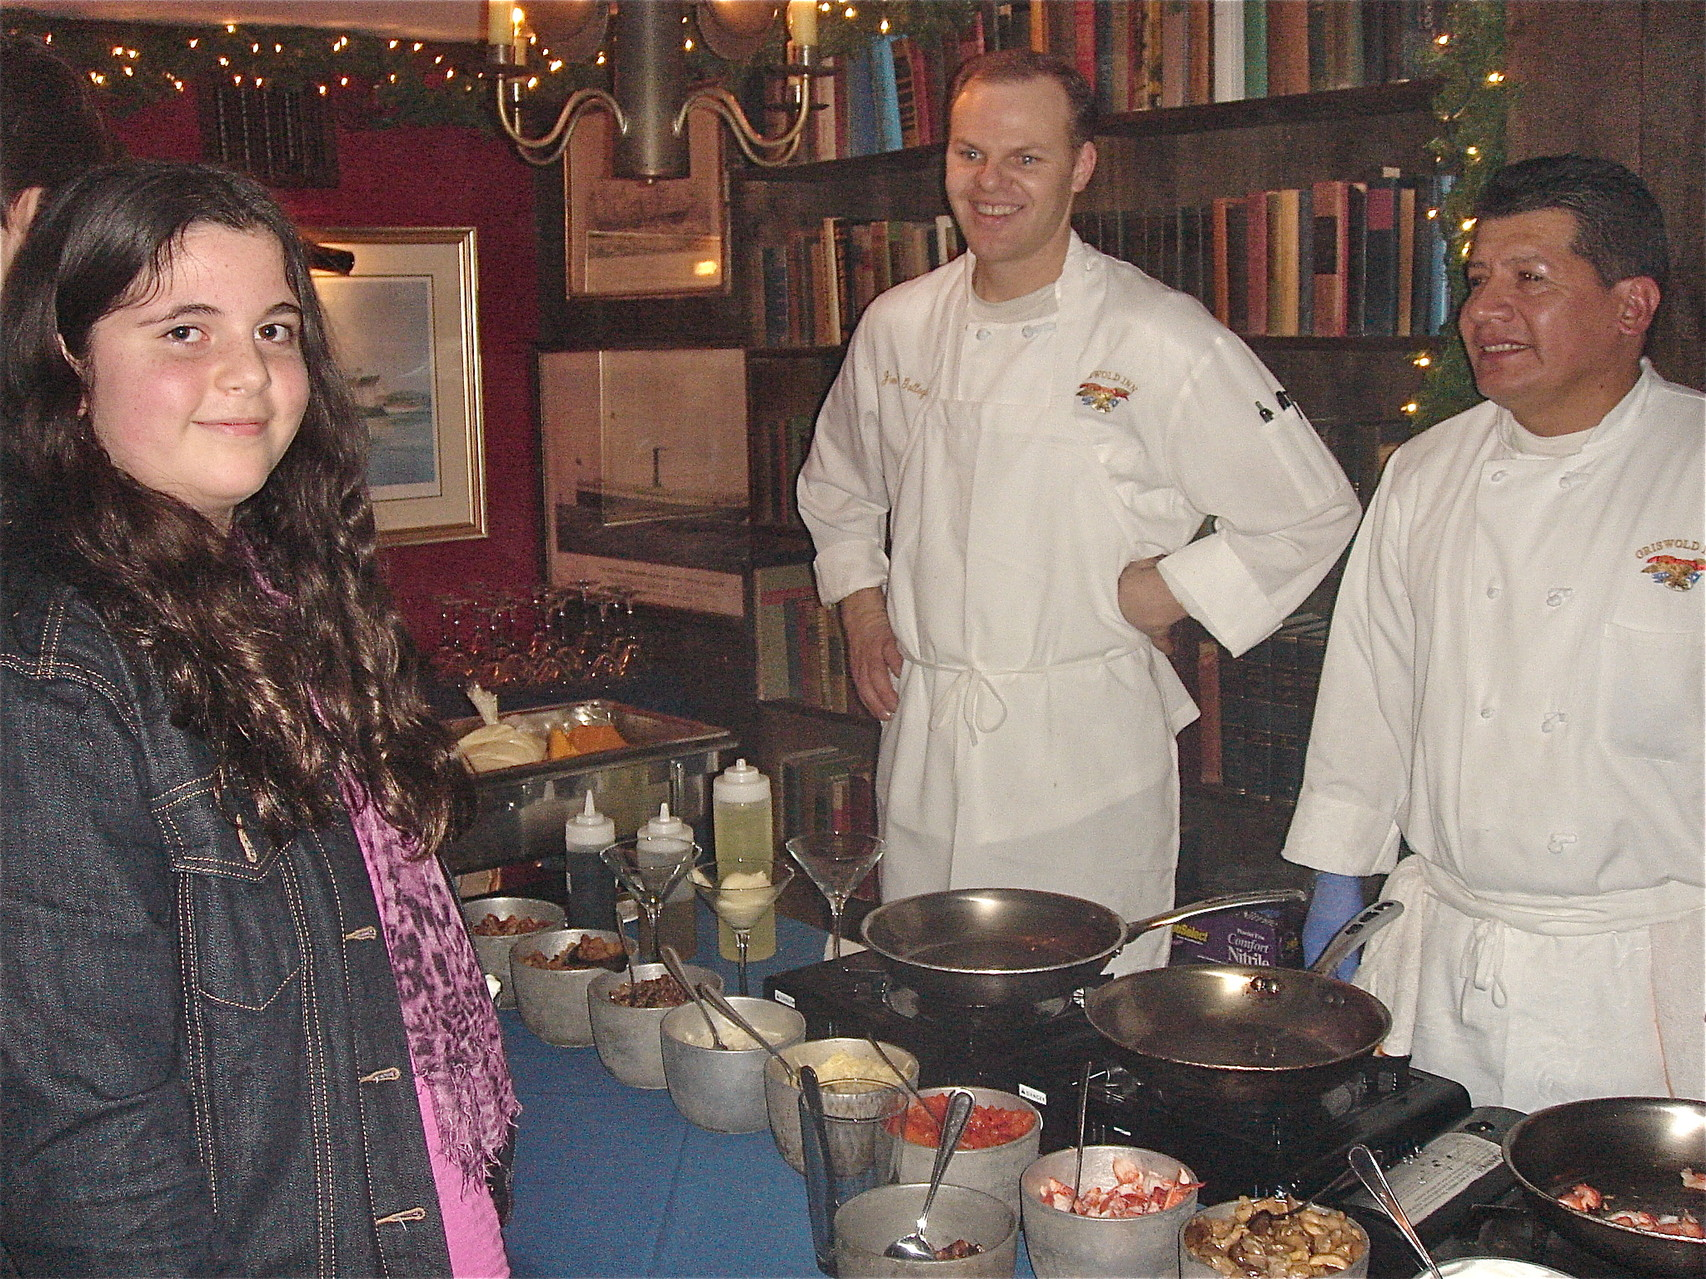 Isabelle Cherot at the mashed potato station